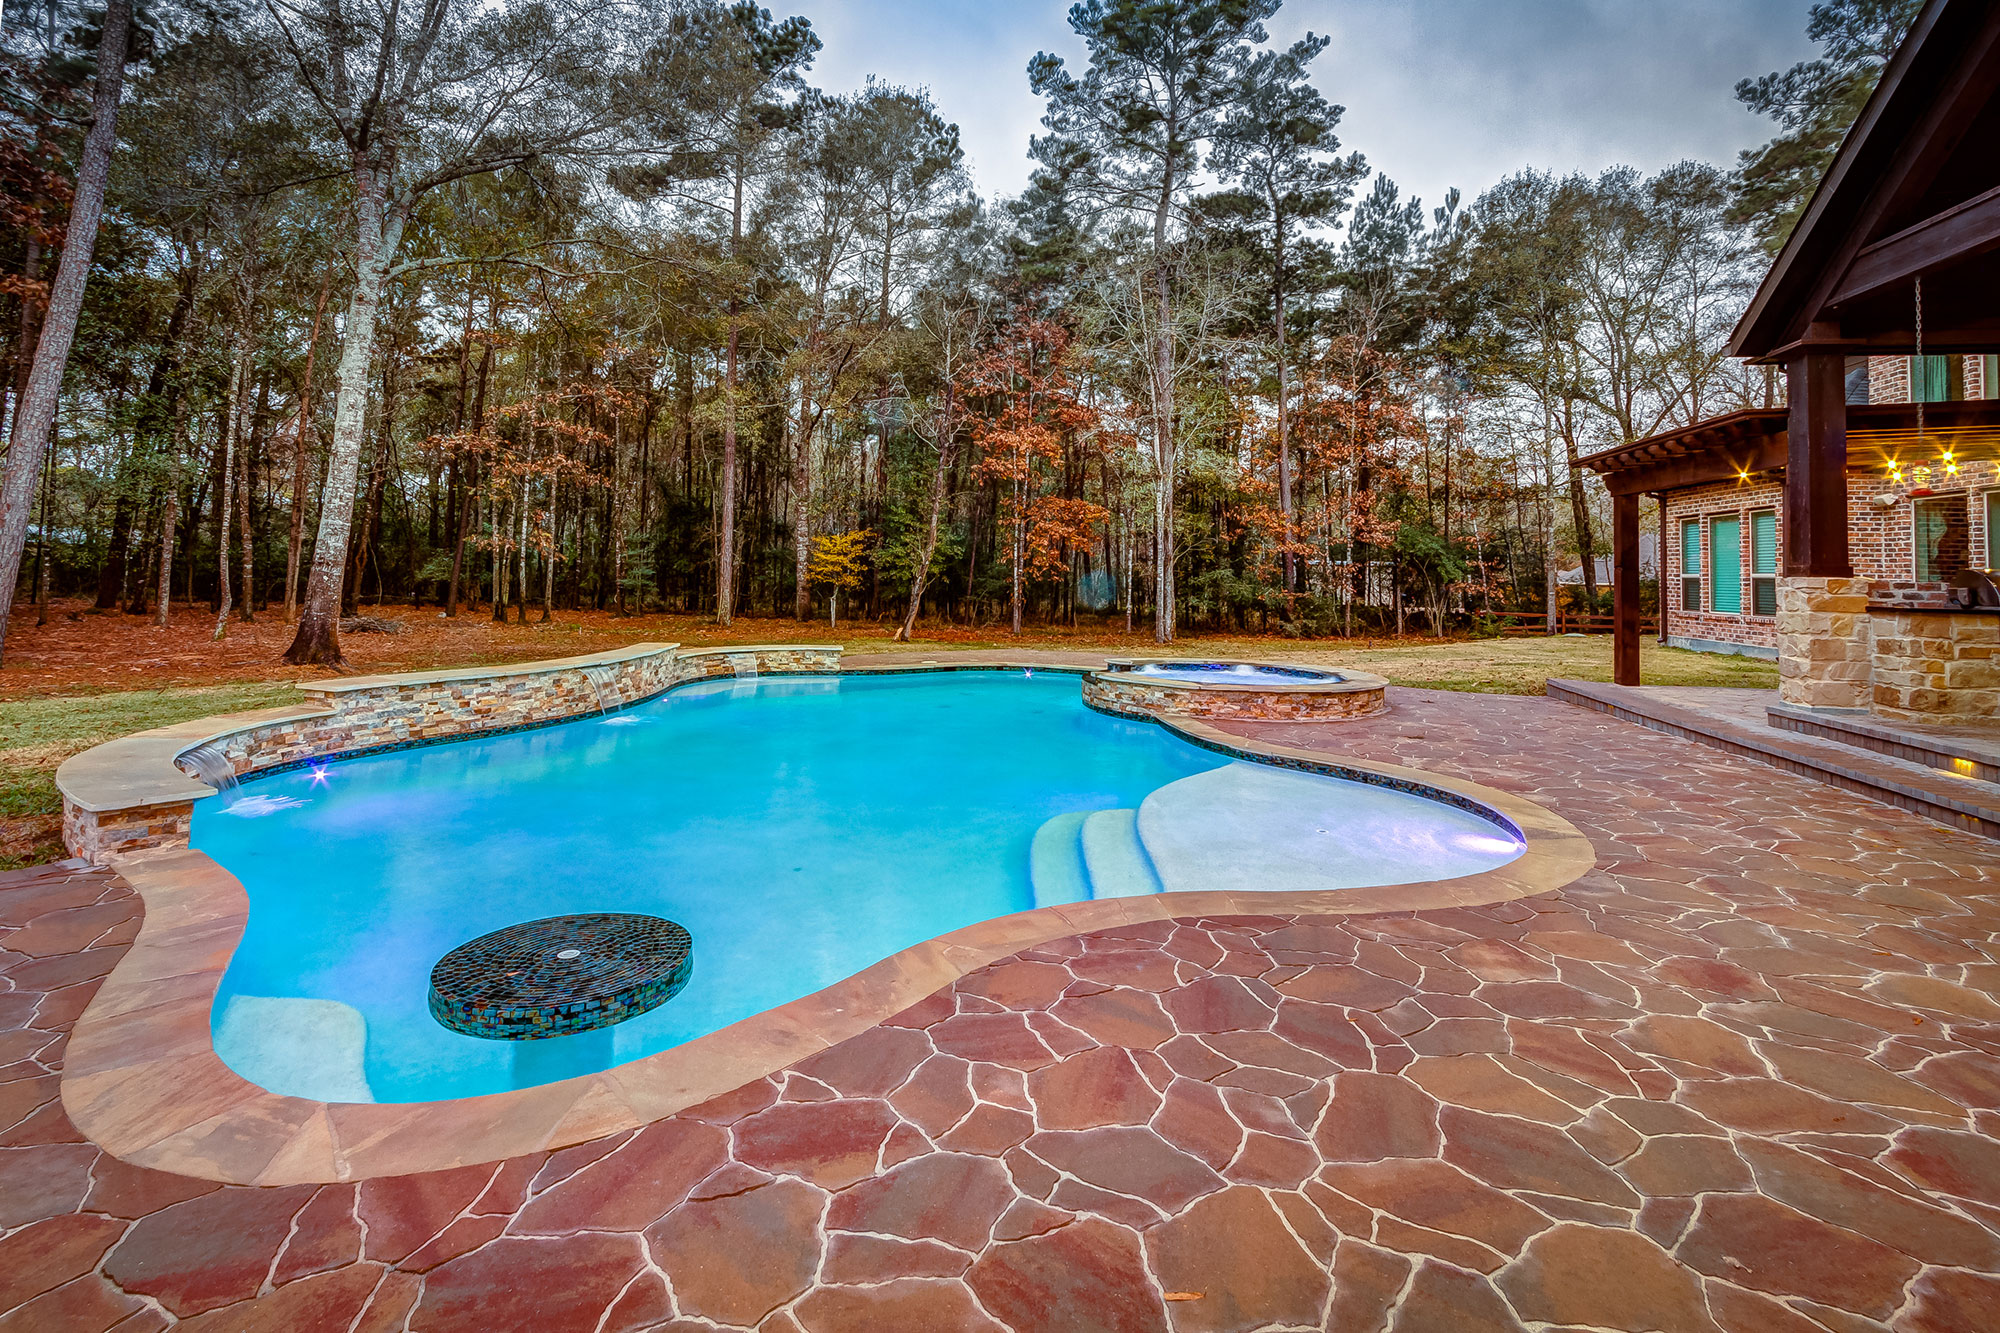 Swimming Pool Design Expectations Vs. Reality, Creekstone Outdoor Living, Houston, TX